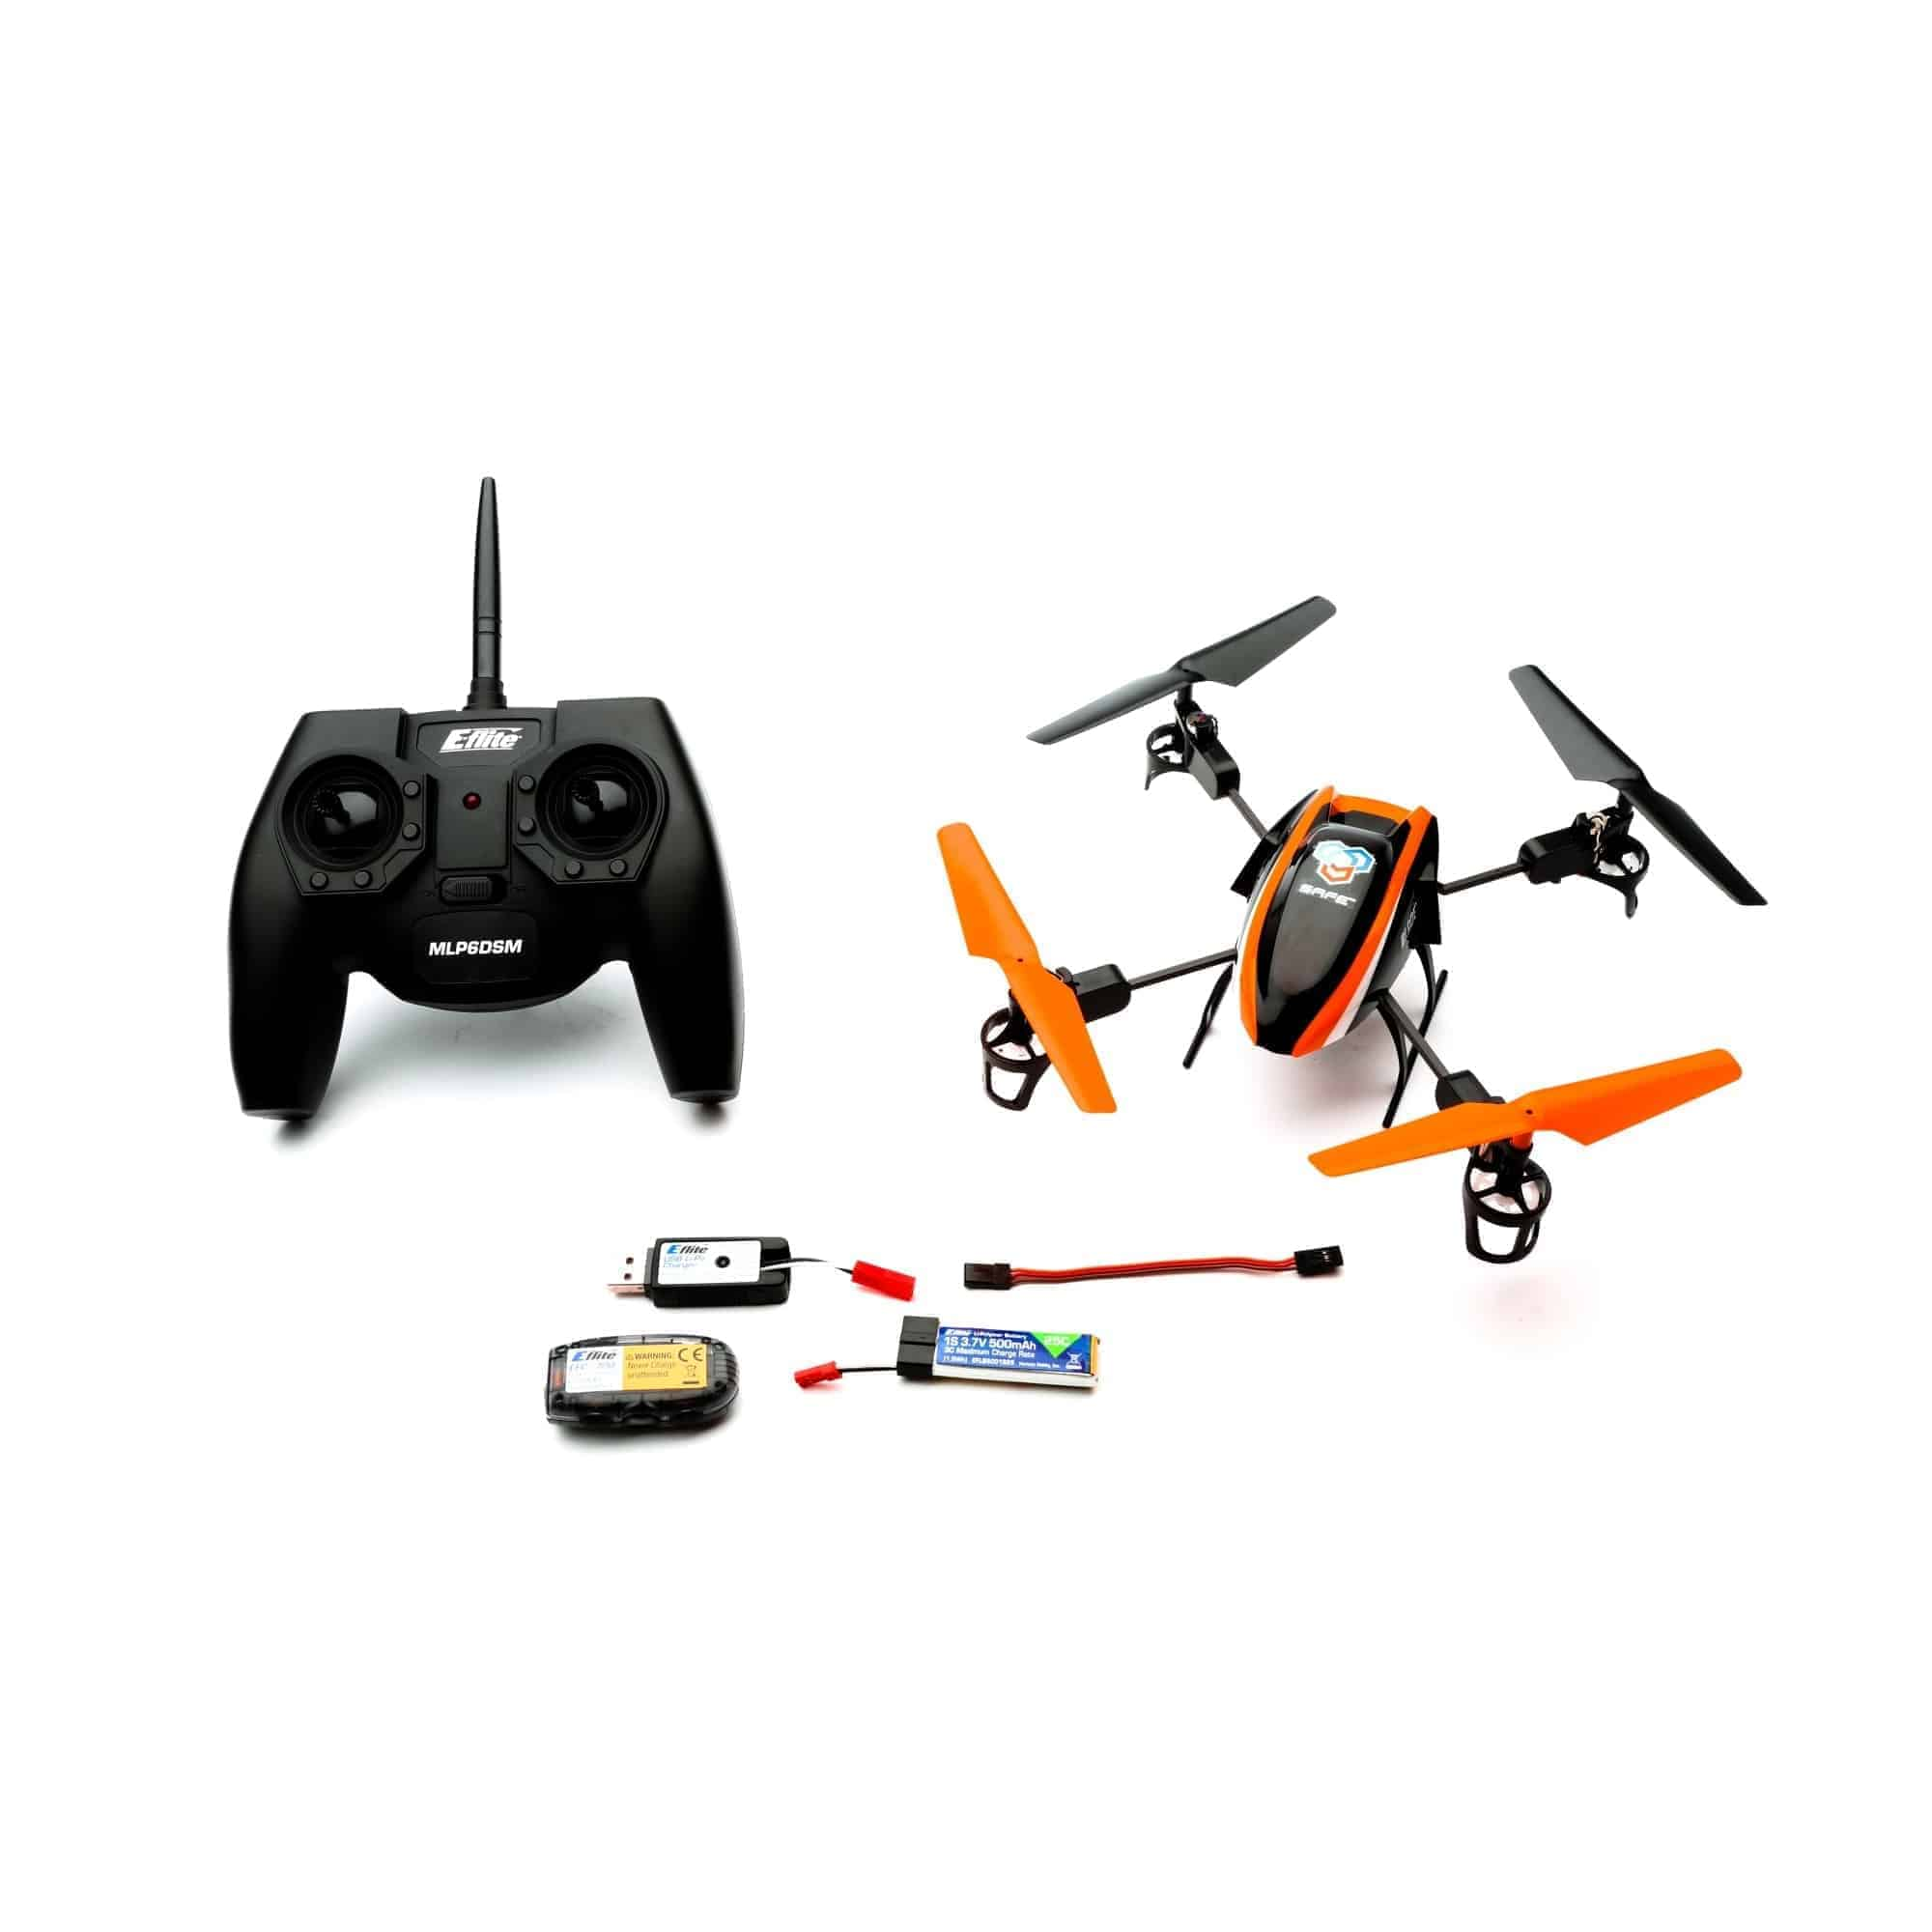 Blade 180 QX HD RTF (Mode2)